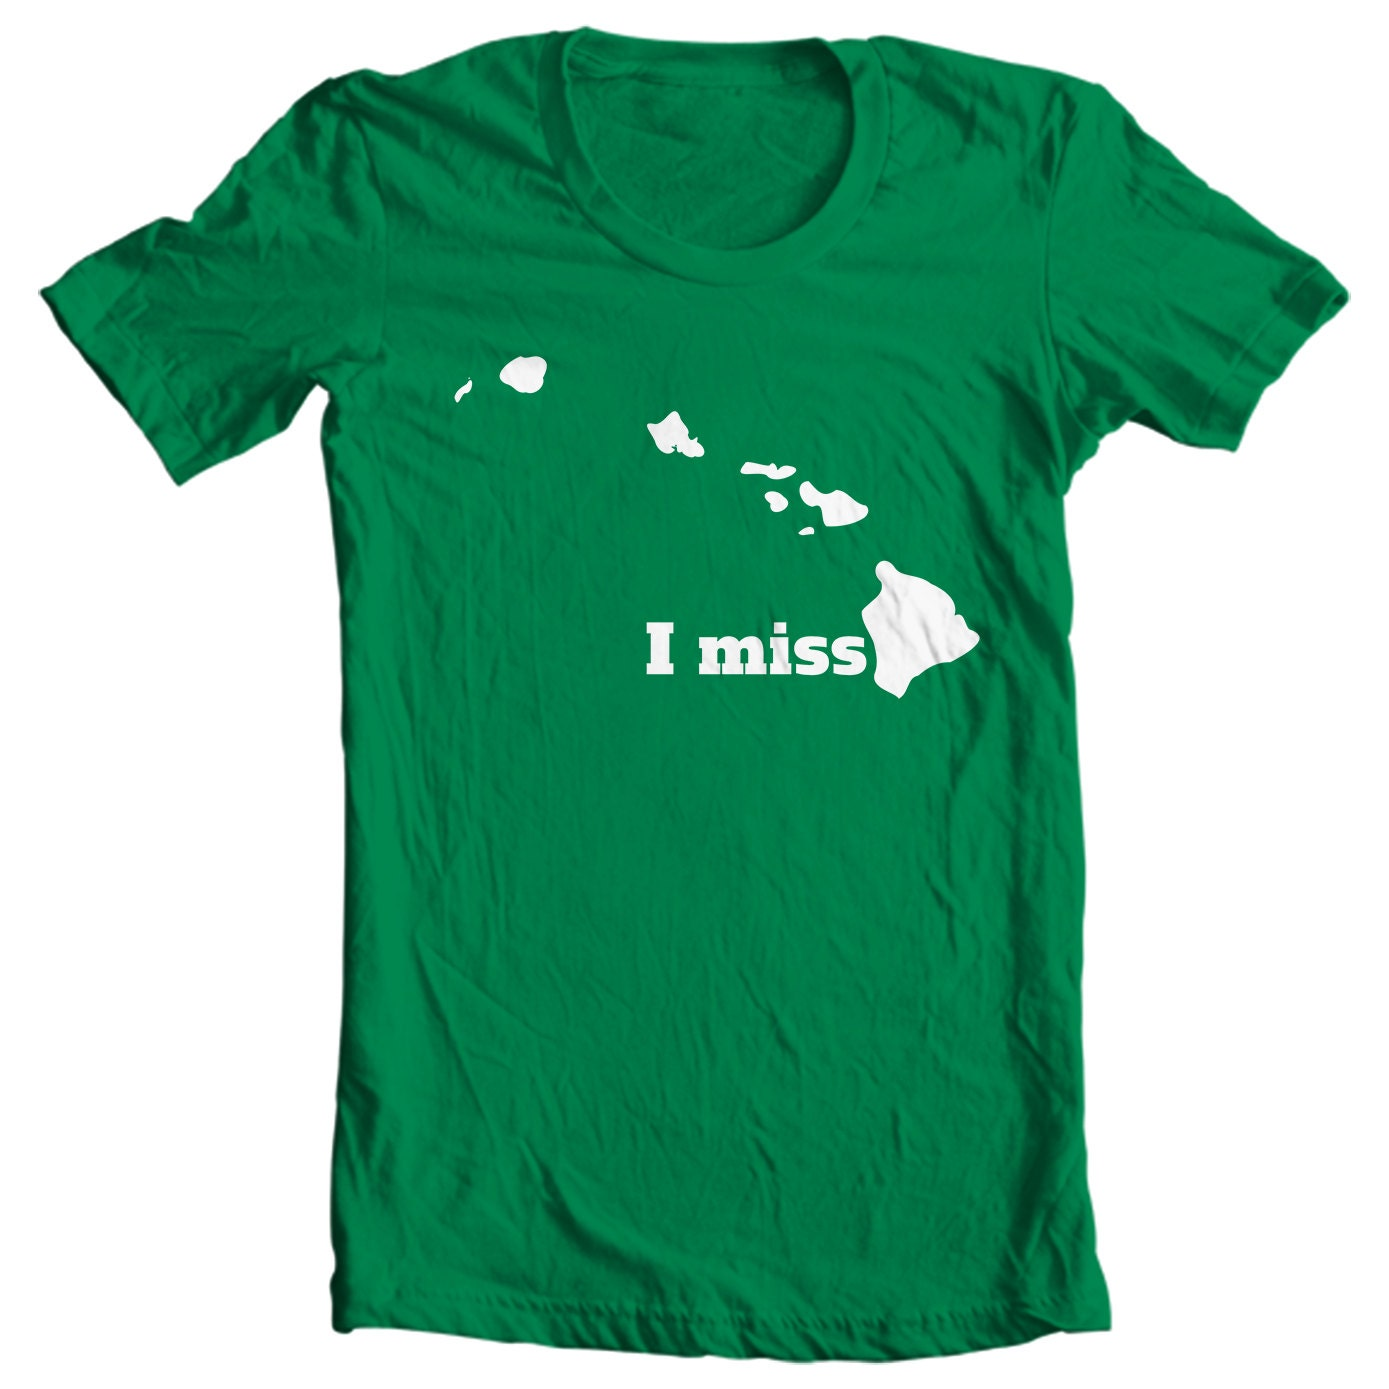 Hawaii T-shirt - I Miss Hawaii - My State Hawaii T-shirt